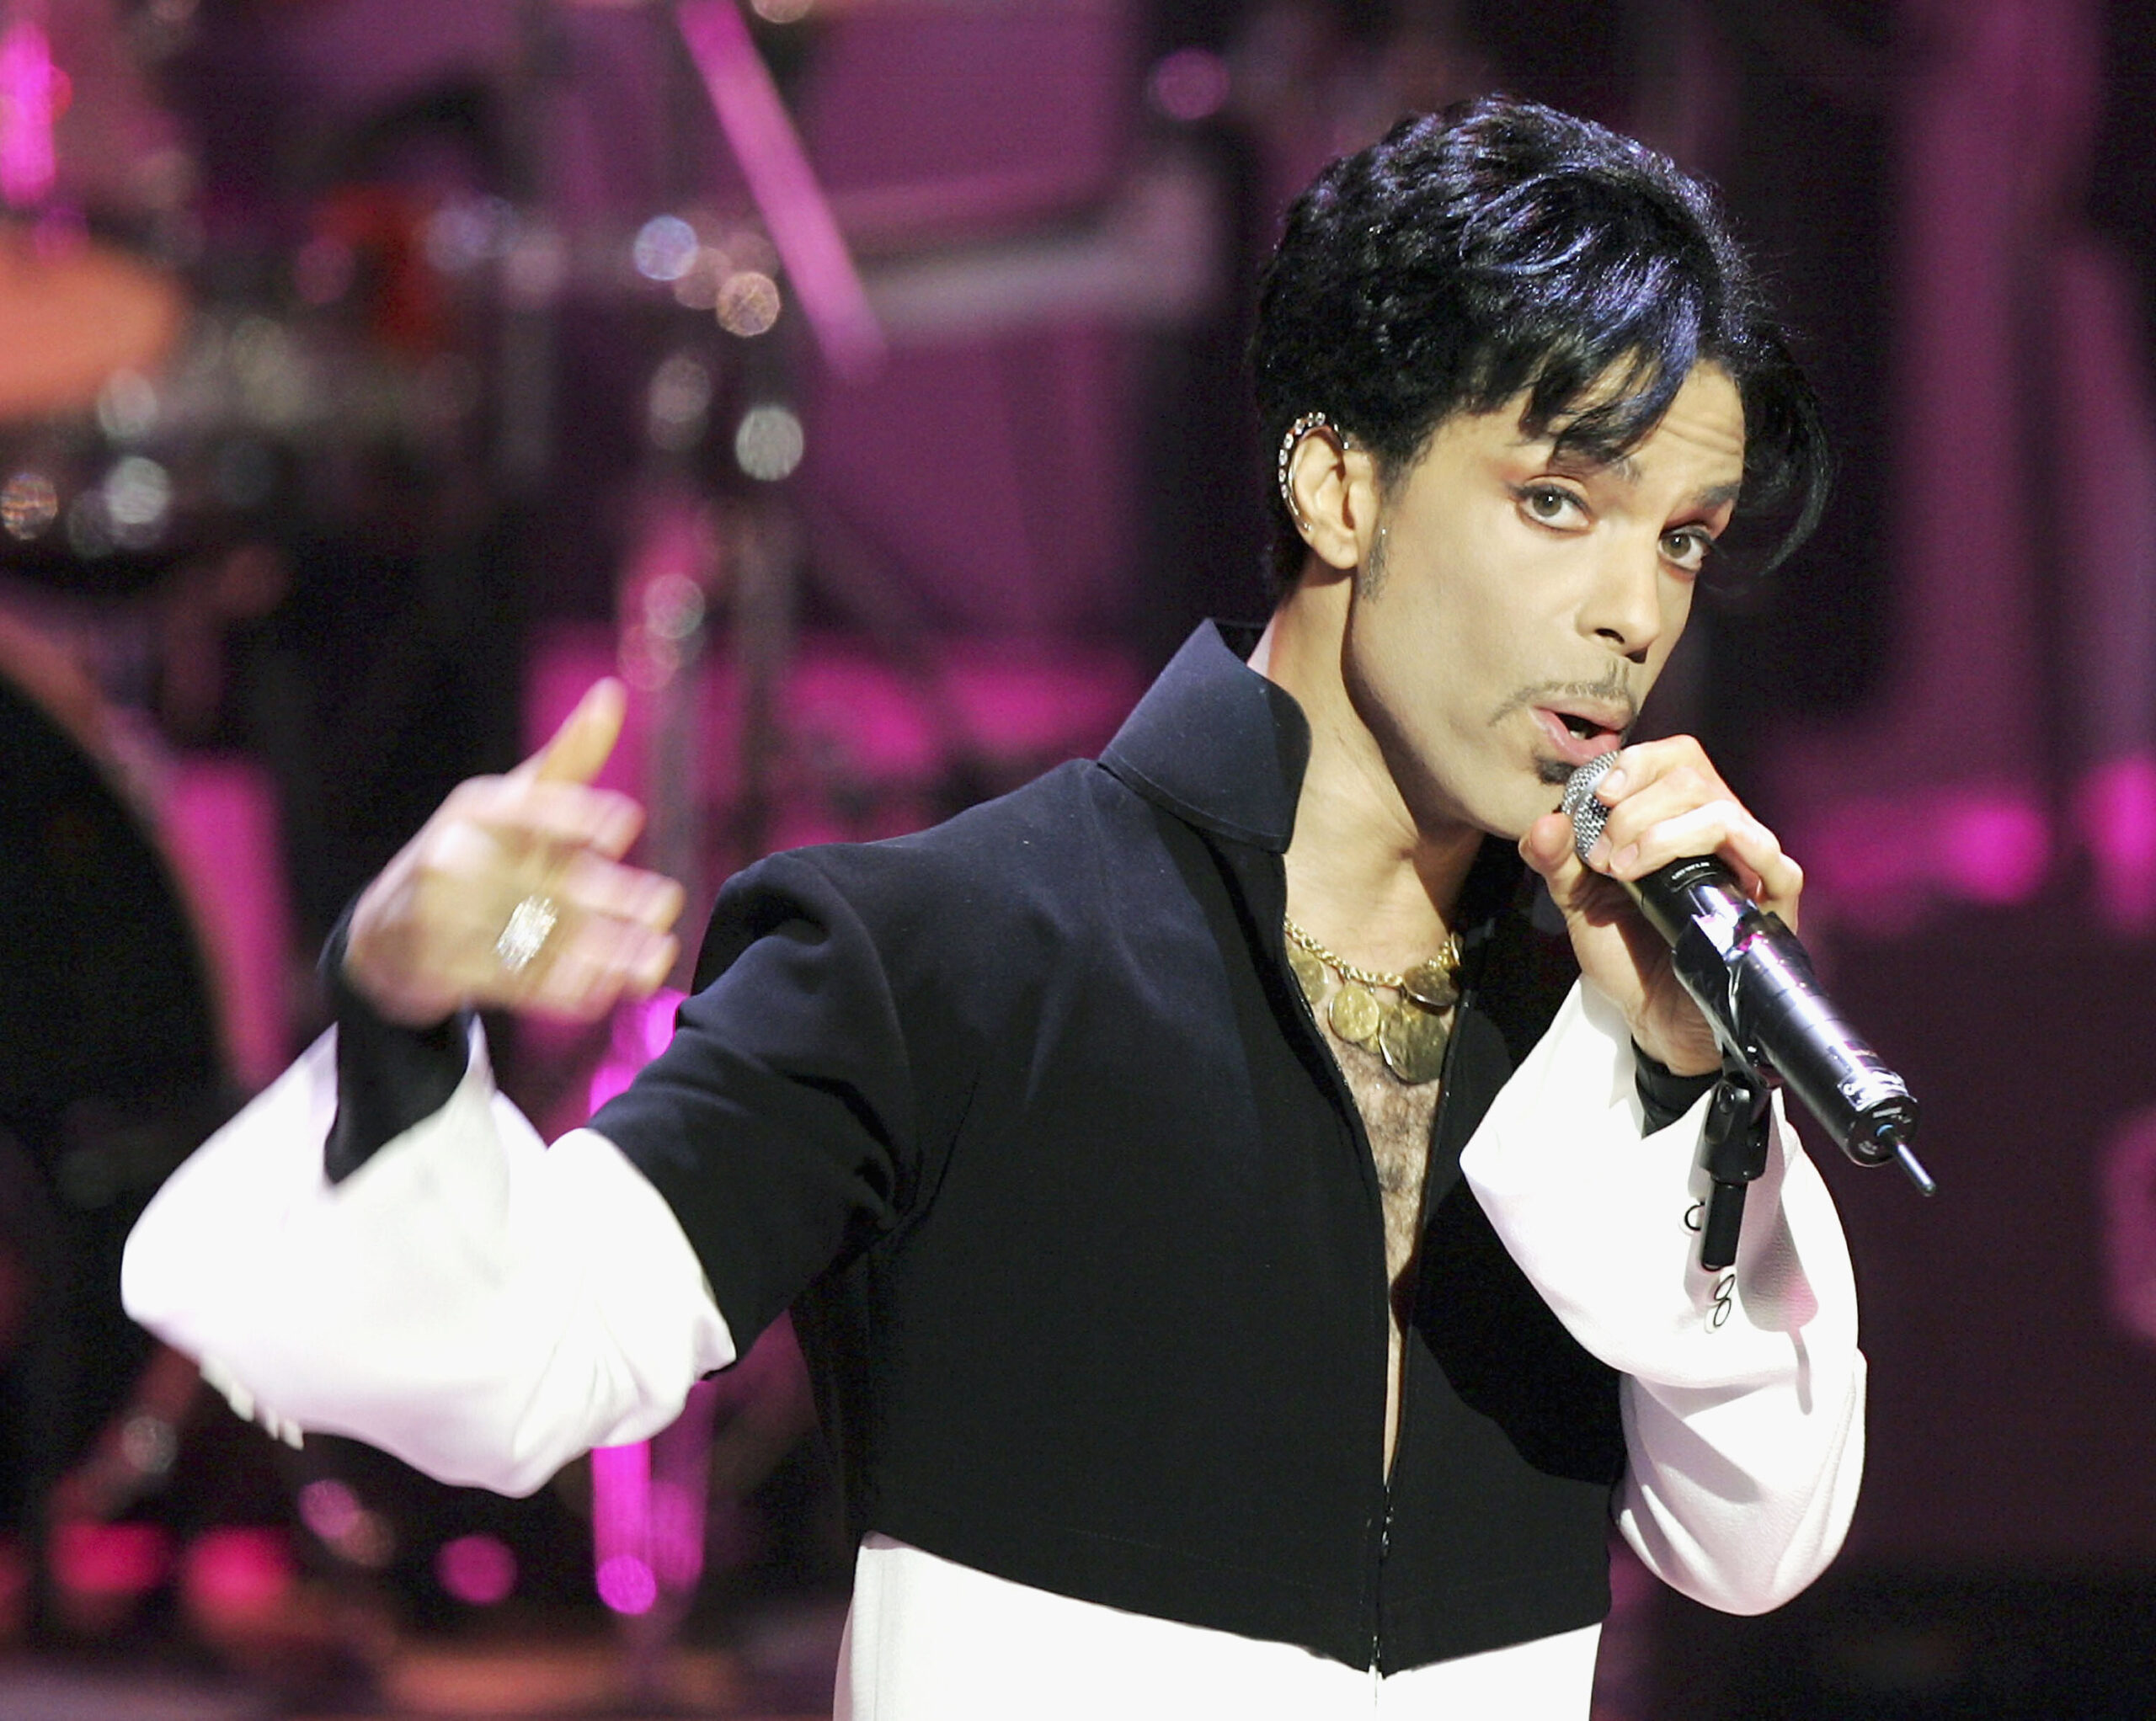 <i>Kevin Winter/Getty Images North America/Getty Images</i><br/>Musician Prince performs onstage at the 36th Annual NAACP Image Awards at the Dorothy Chandler Pavilion on March 19